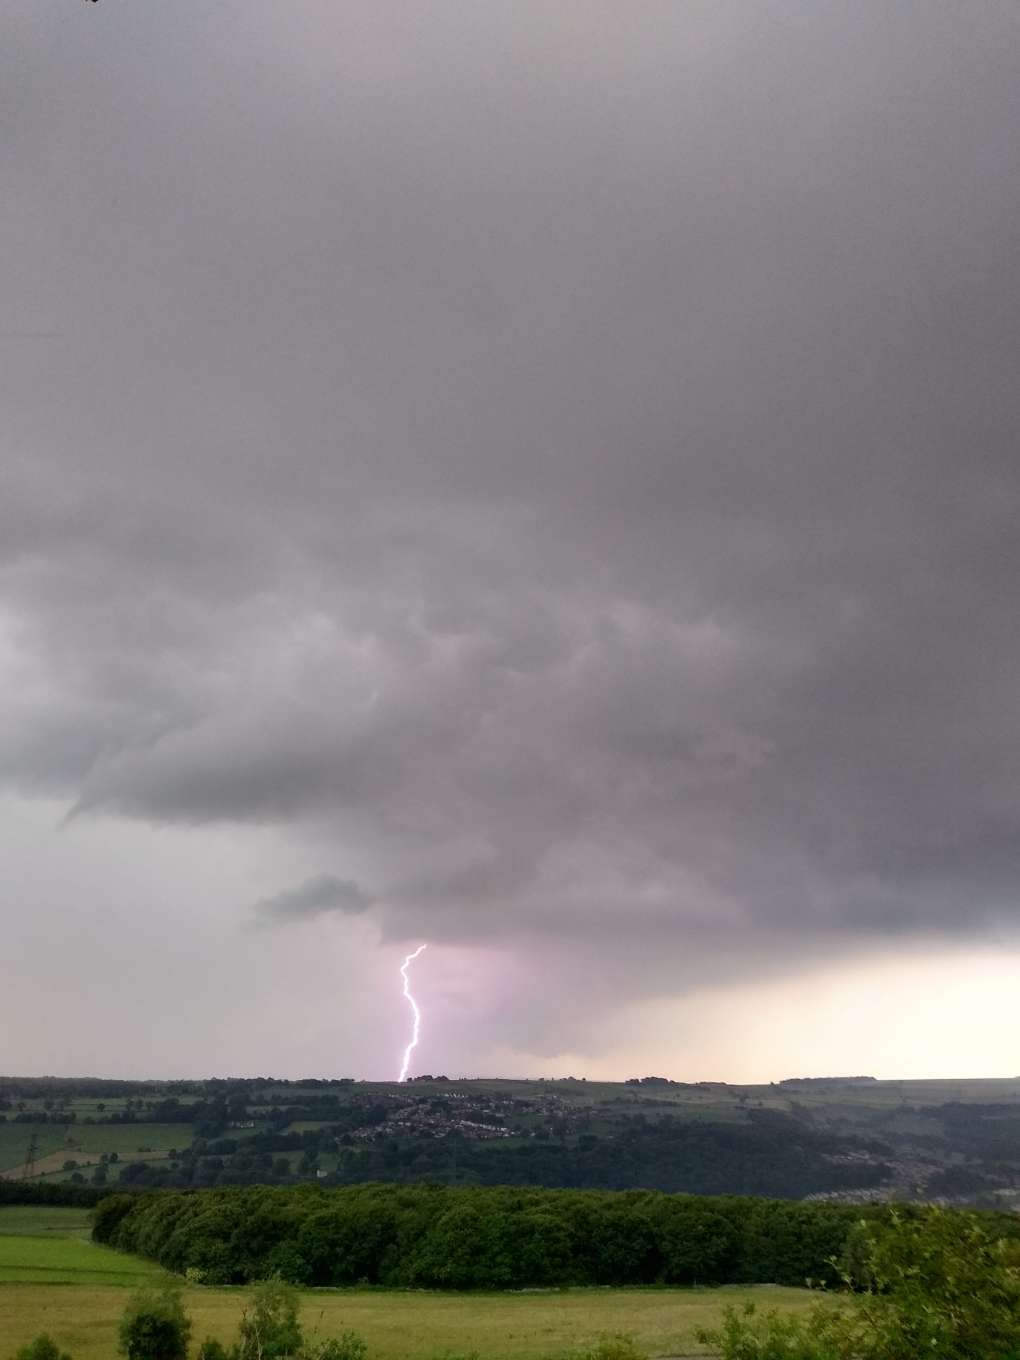 Taken from N Sheffield looking westwards on the evening of 16th June 2020 Sheffield, South Yorkshire,United Kingdom, sent by SJV